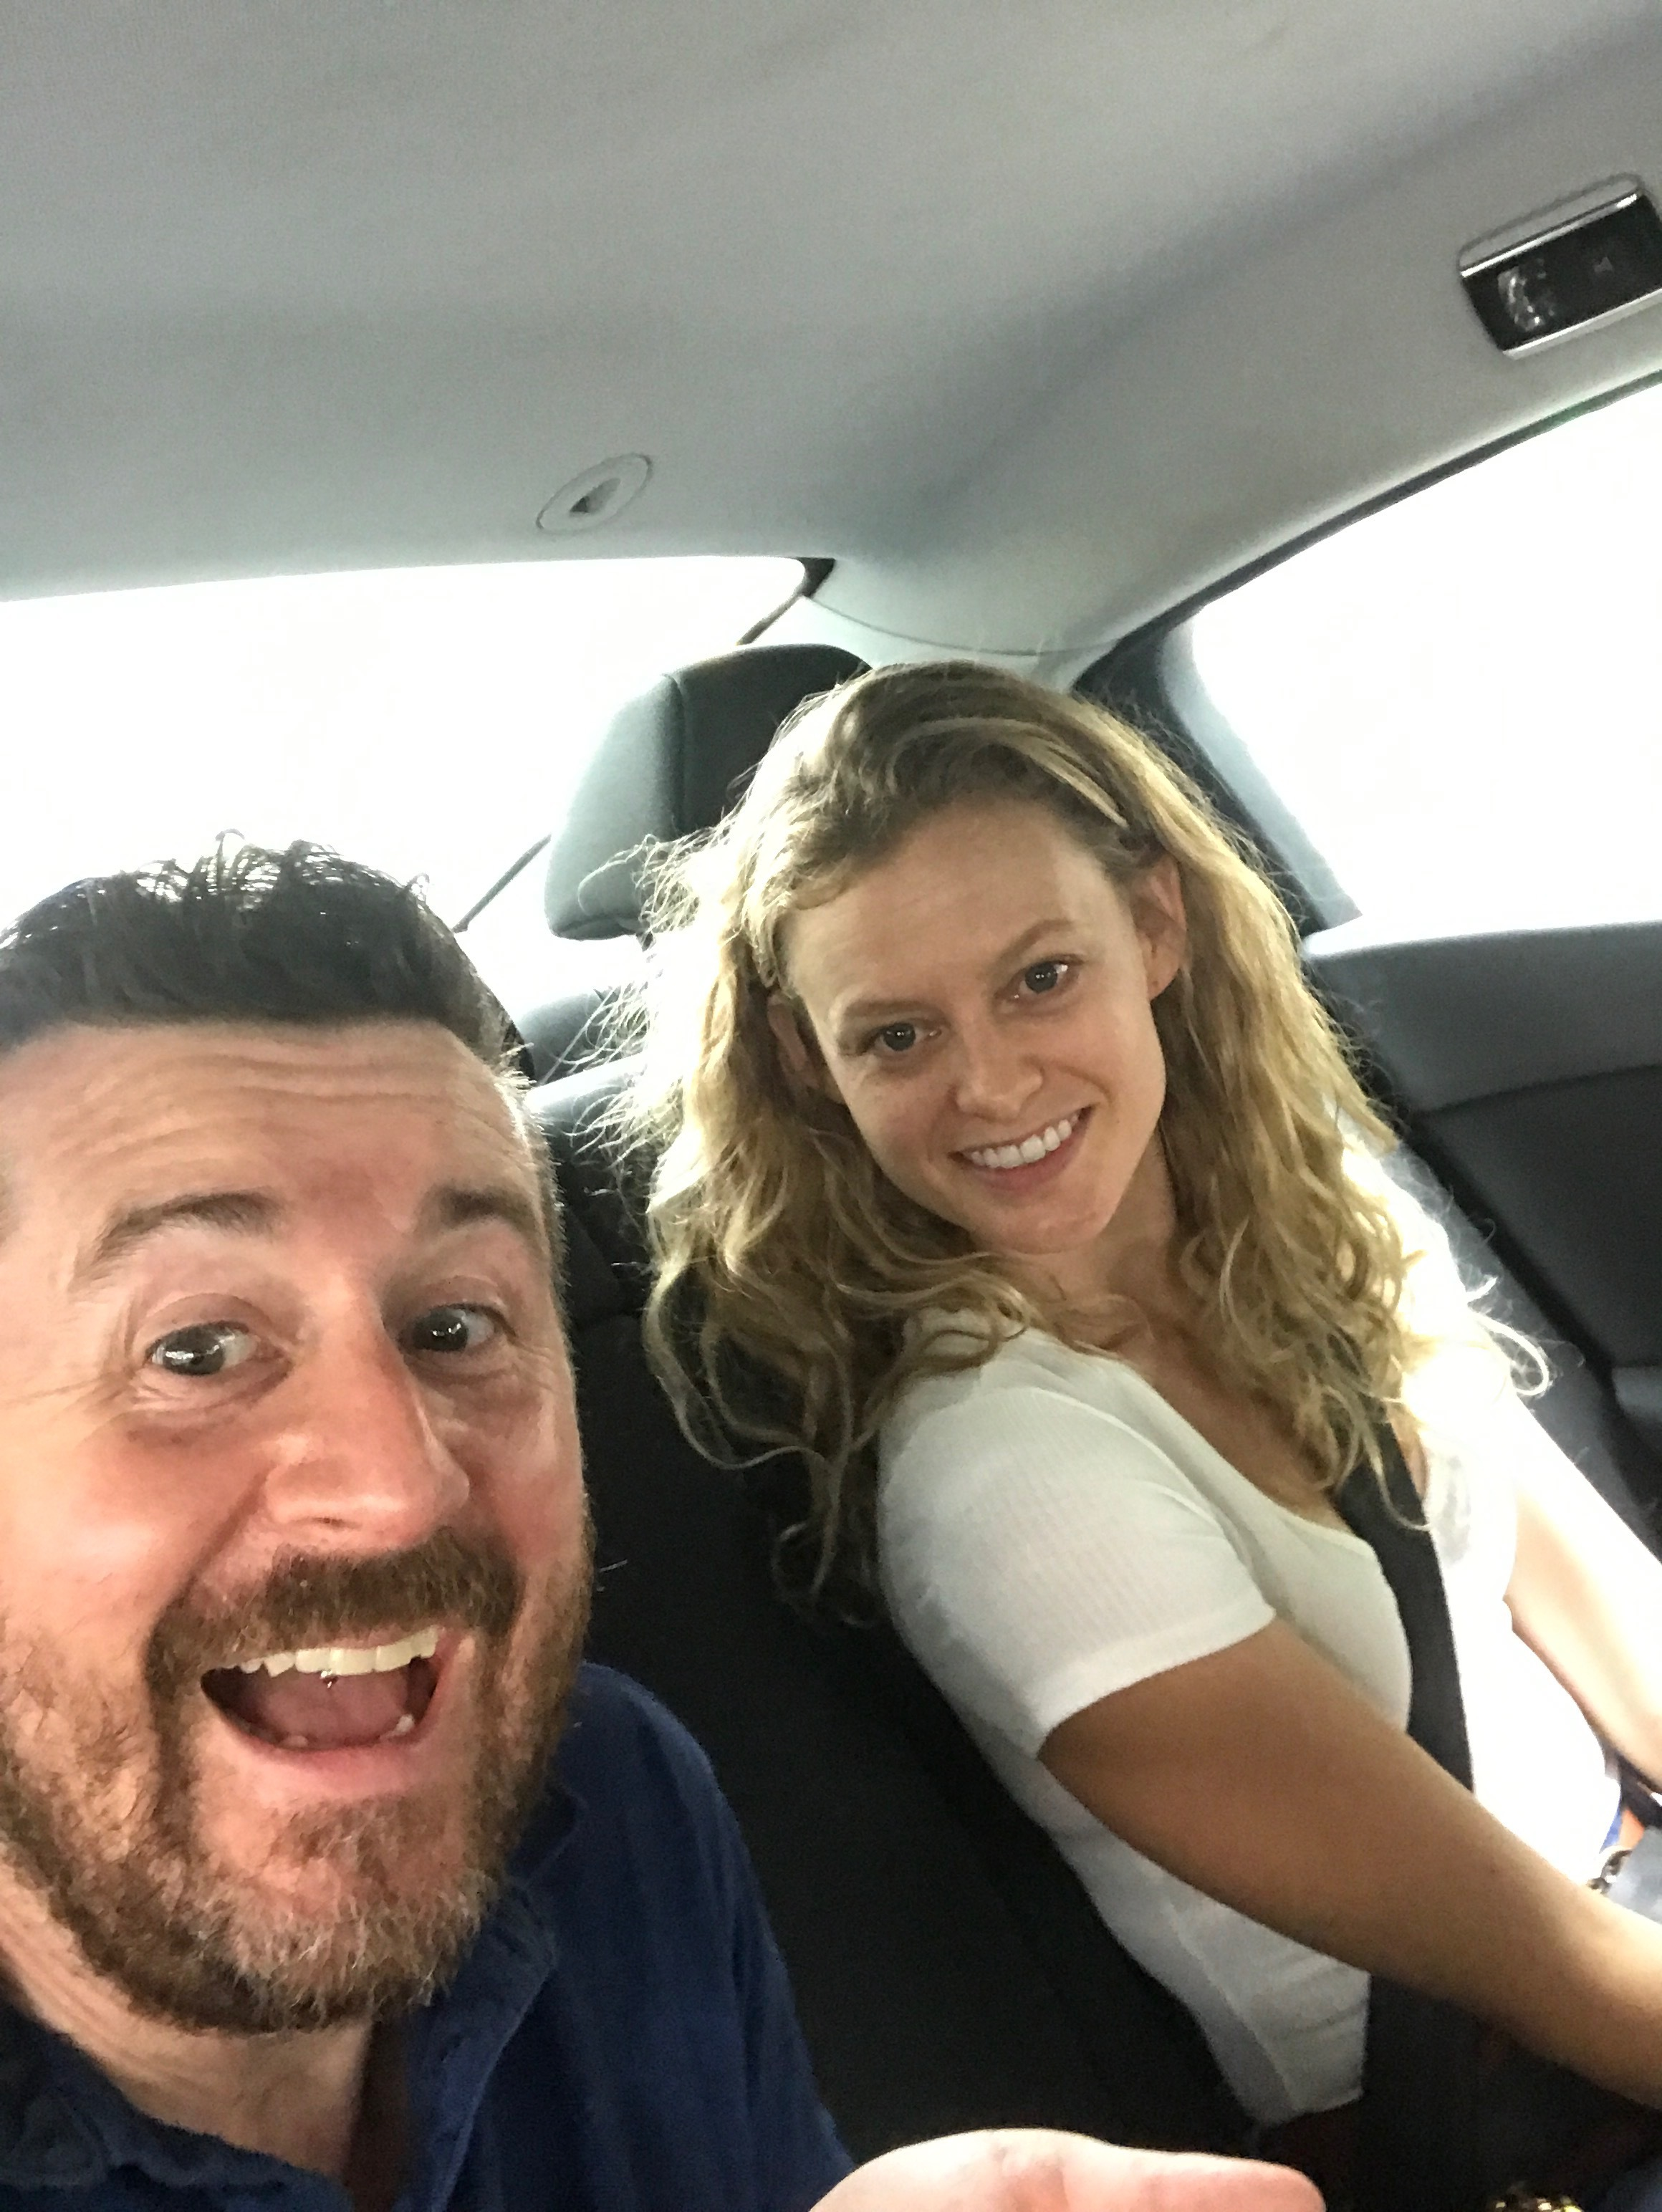 Two cheeky individuals gloating that their Uber driver didn't smell. Hilarious.